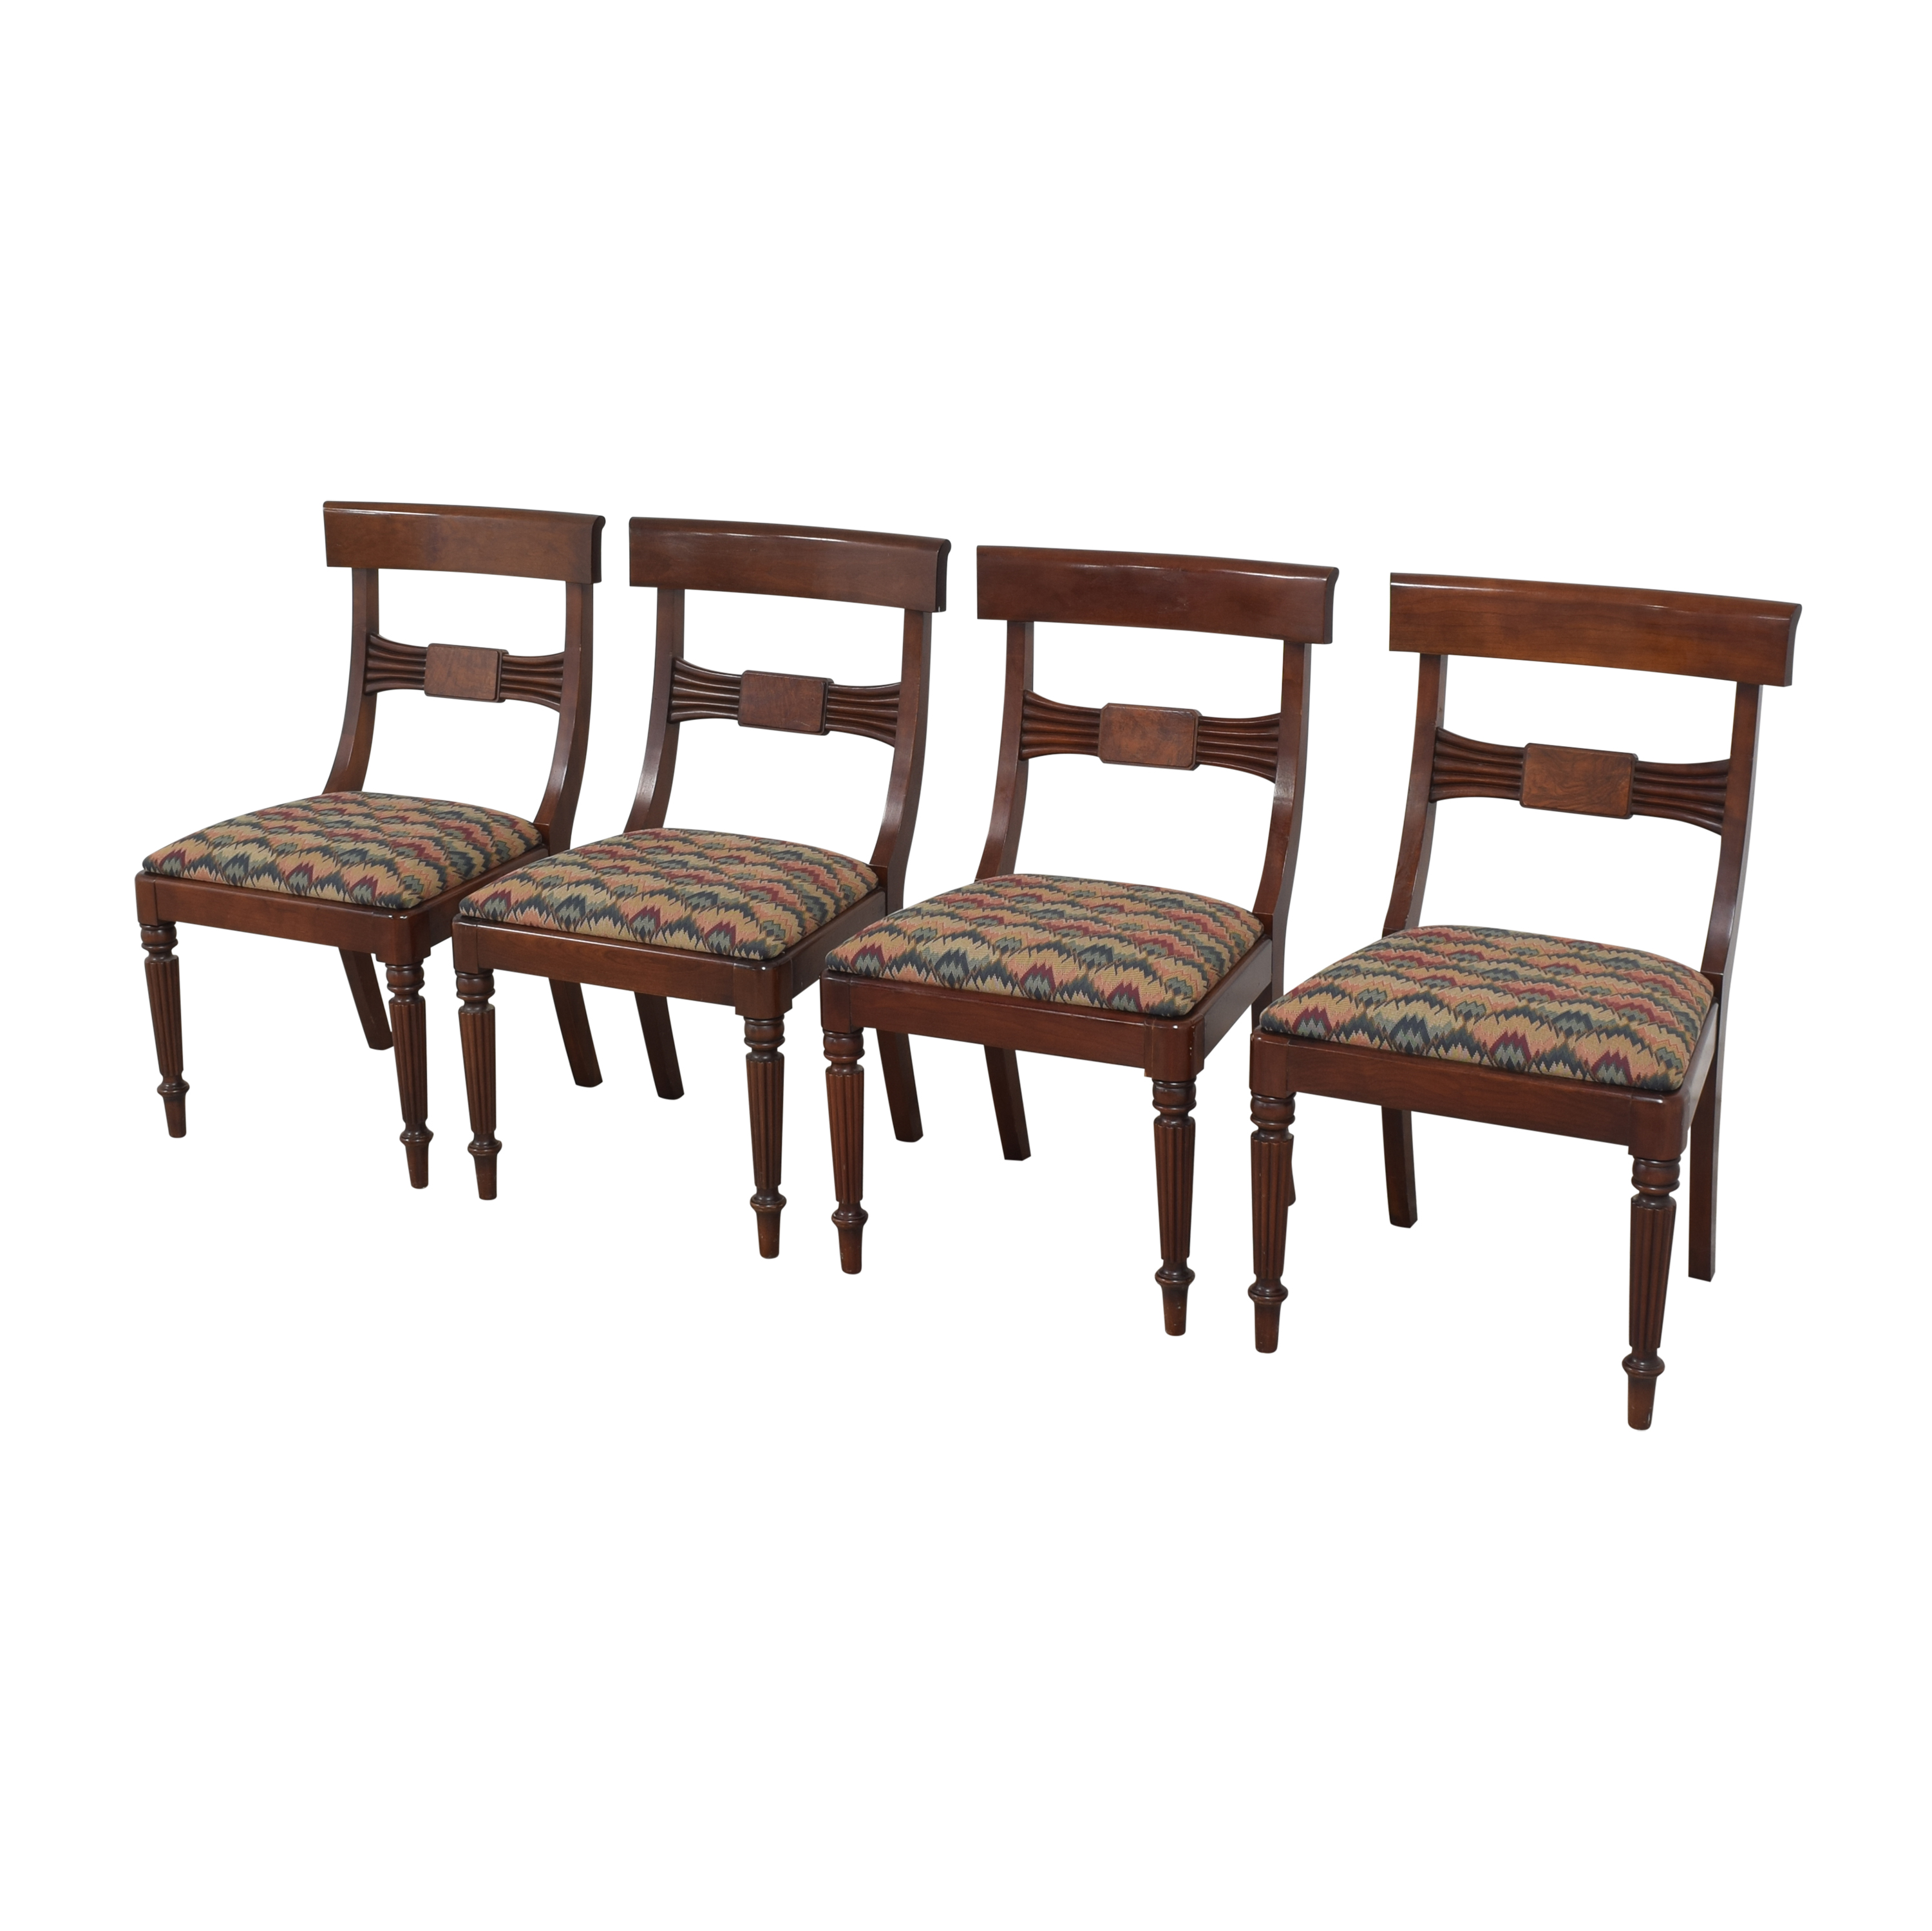 Statton Statton Dining Side Chairs Chairs